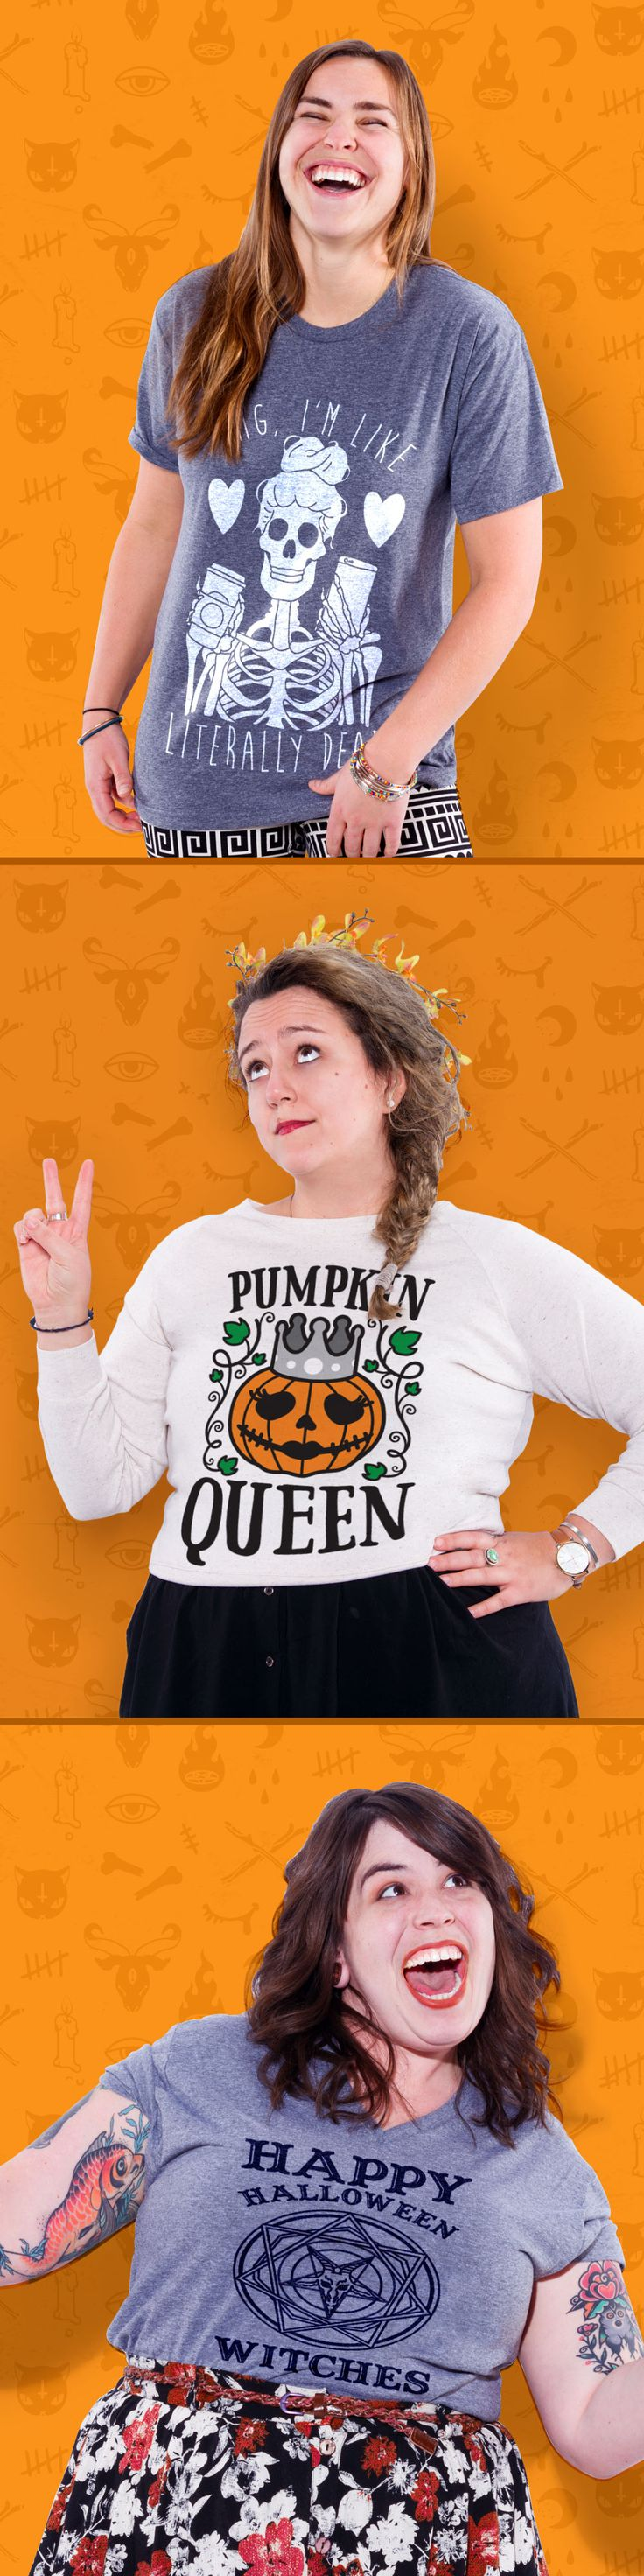 Check out our best halloween tees, tanks and sweatshirts! Trick or treat is almost here.